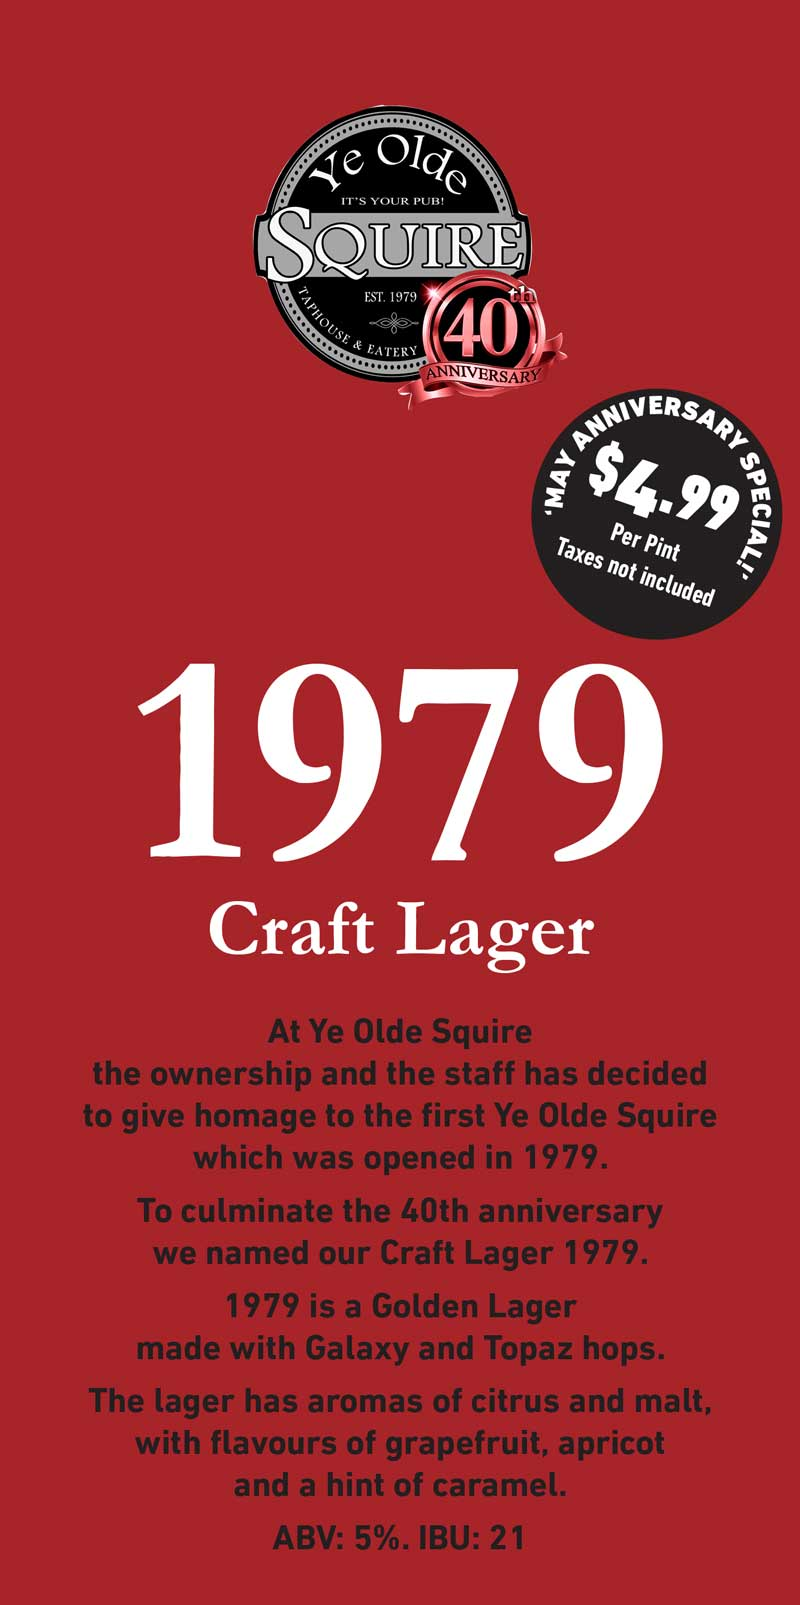 1079 Craft Lager Special